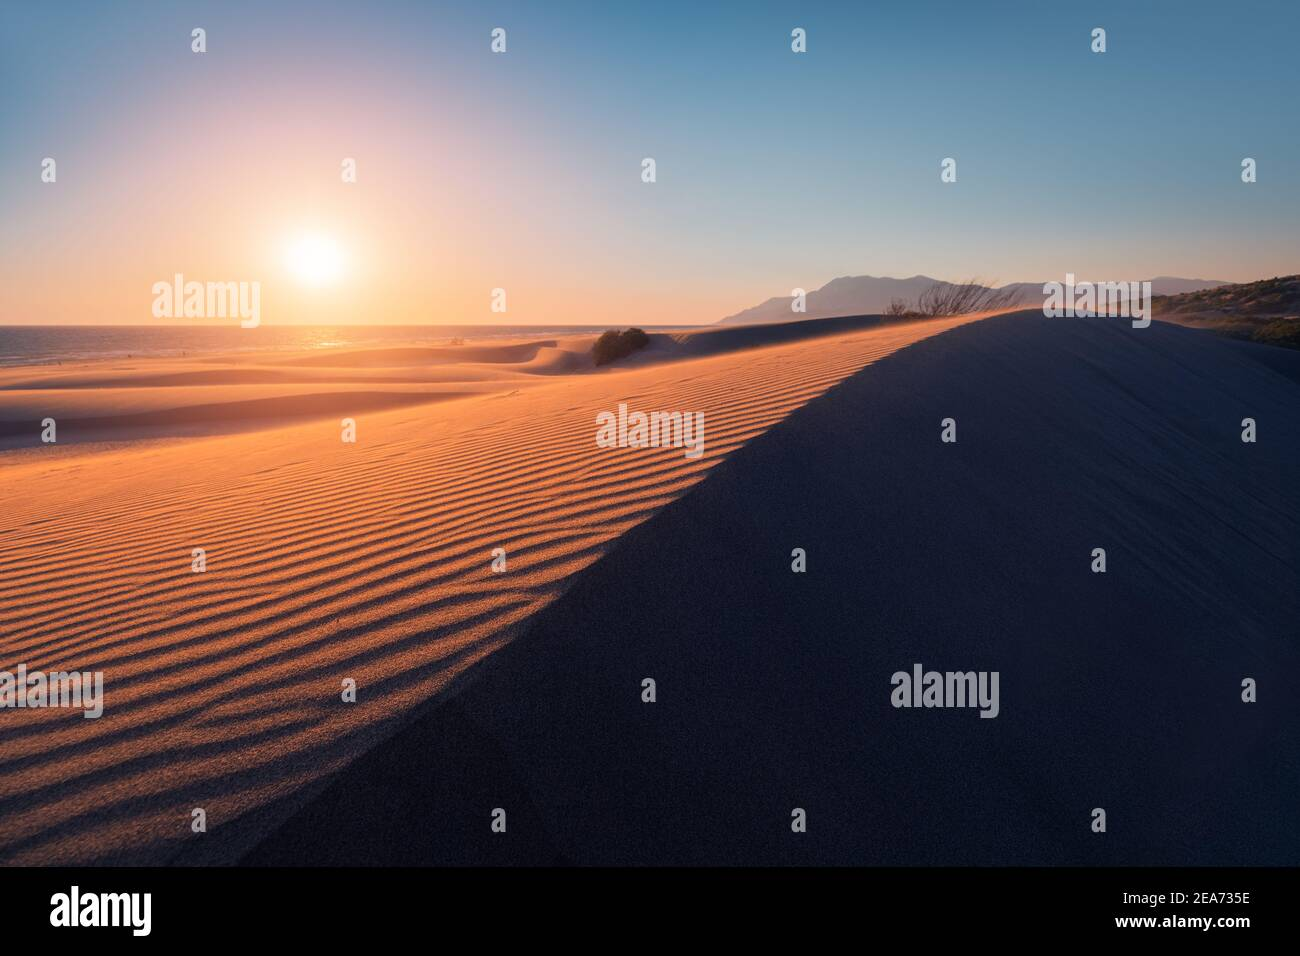 Atmospheric and mystical moody light of the sunset sunbeam illuminated the slope of a sand dune somewhere in the depths of the Sahara Desert Stock Photo